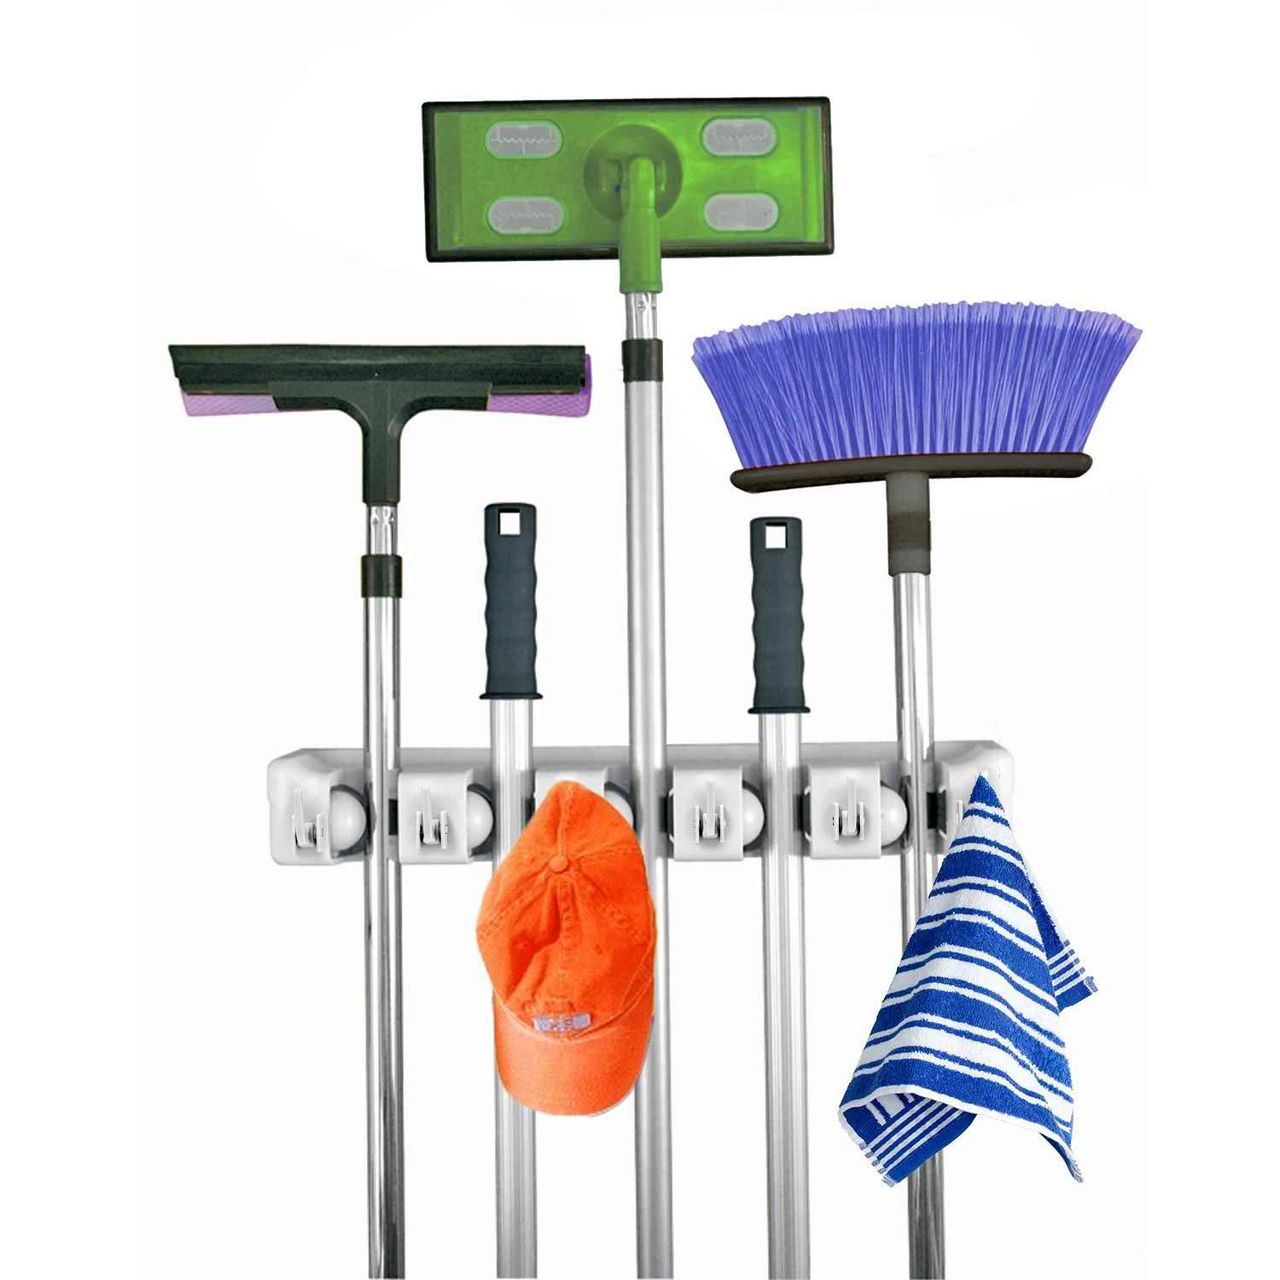 Mop and Broom Holder, 5 position with 6 hooks garage storage Holds up to 11 Tools